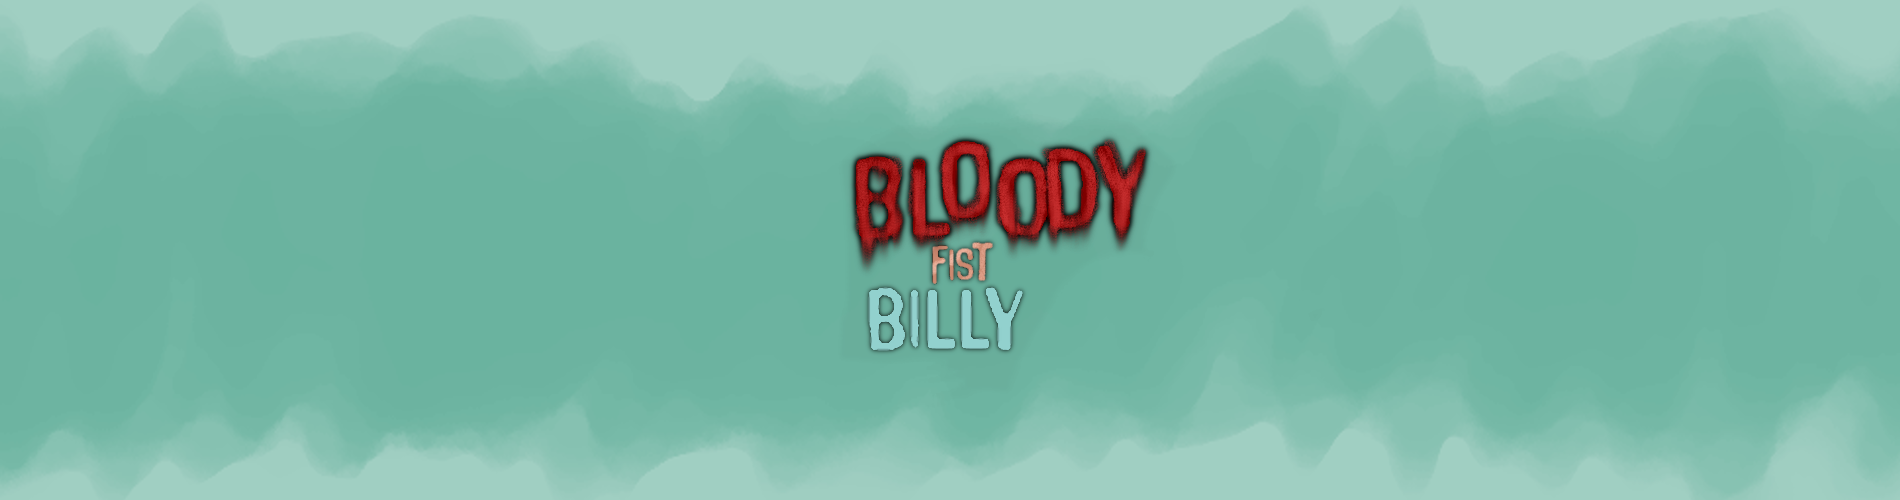 BLOODY FIST BILLY